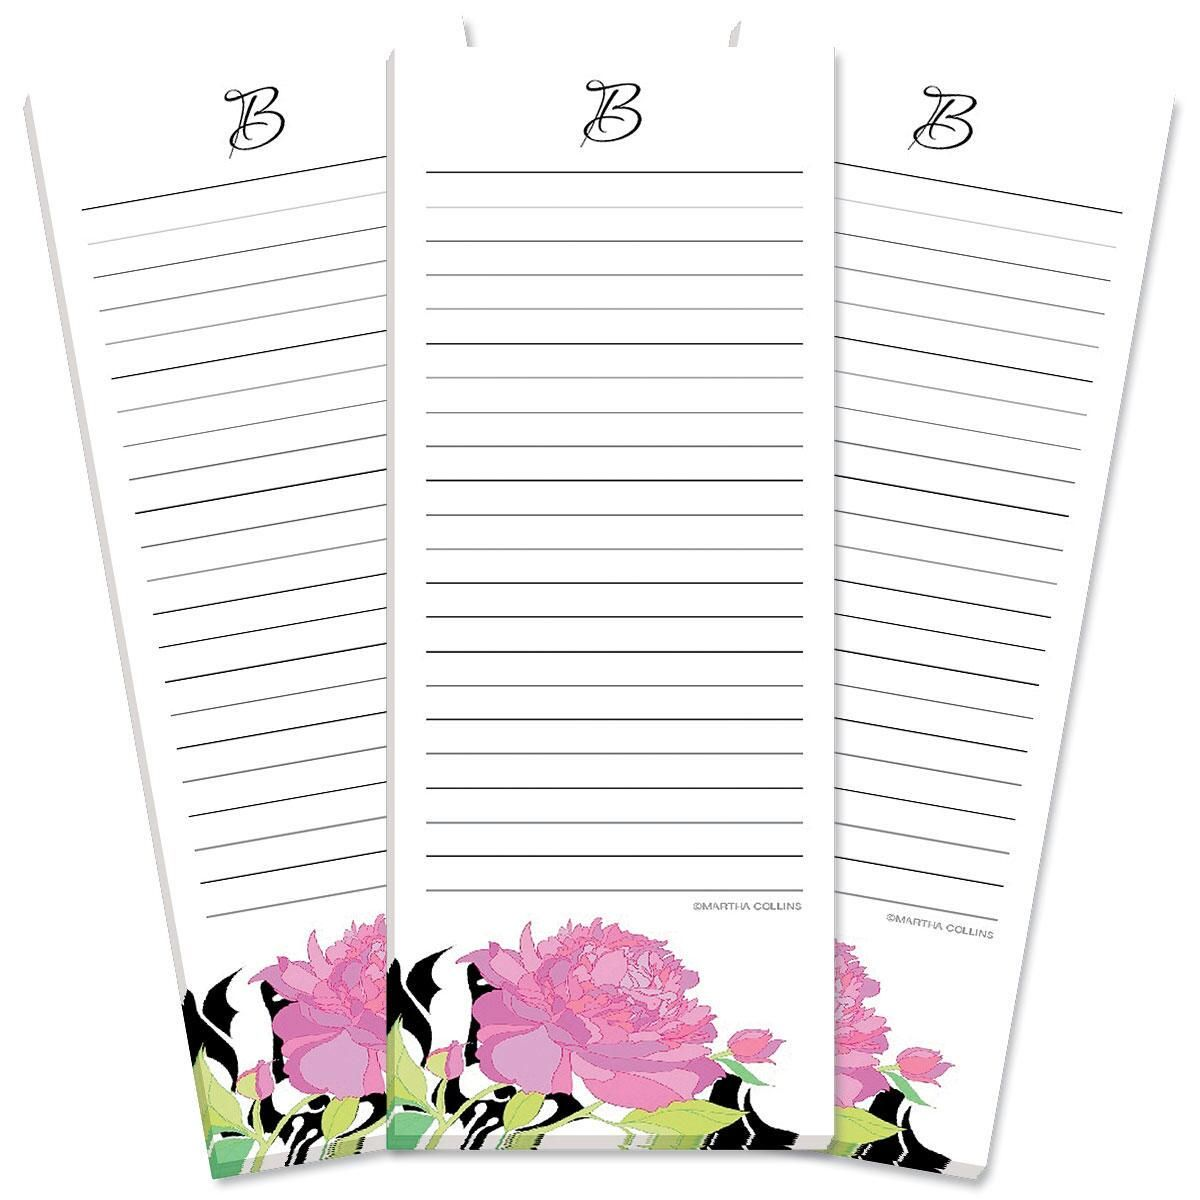 Just One Initial Lined Shopping List Pads